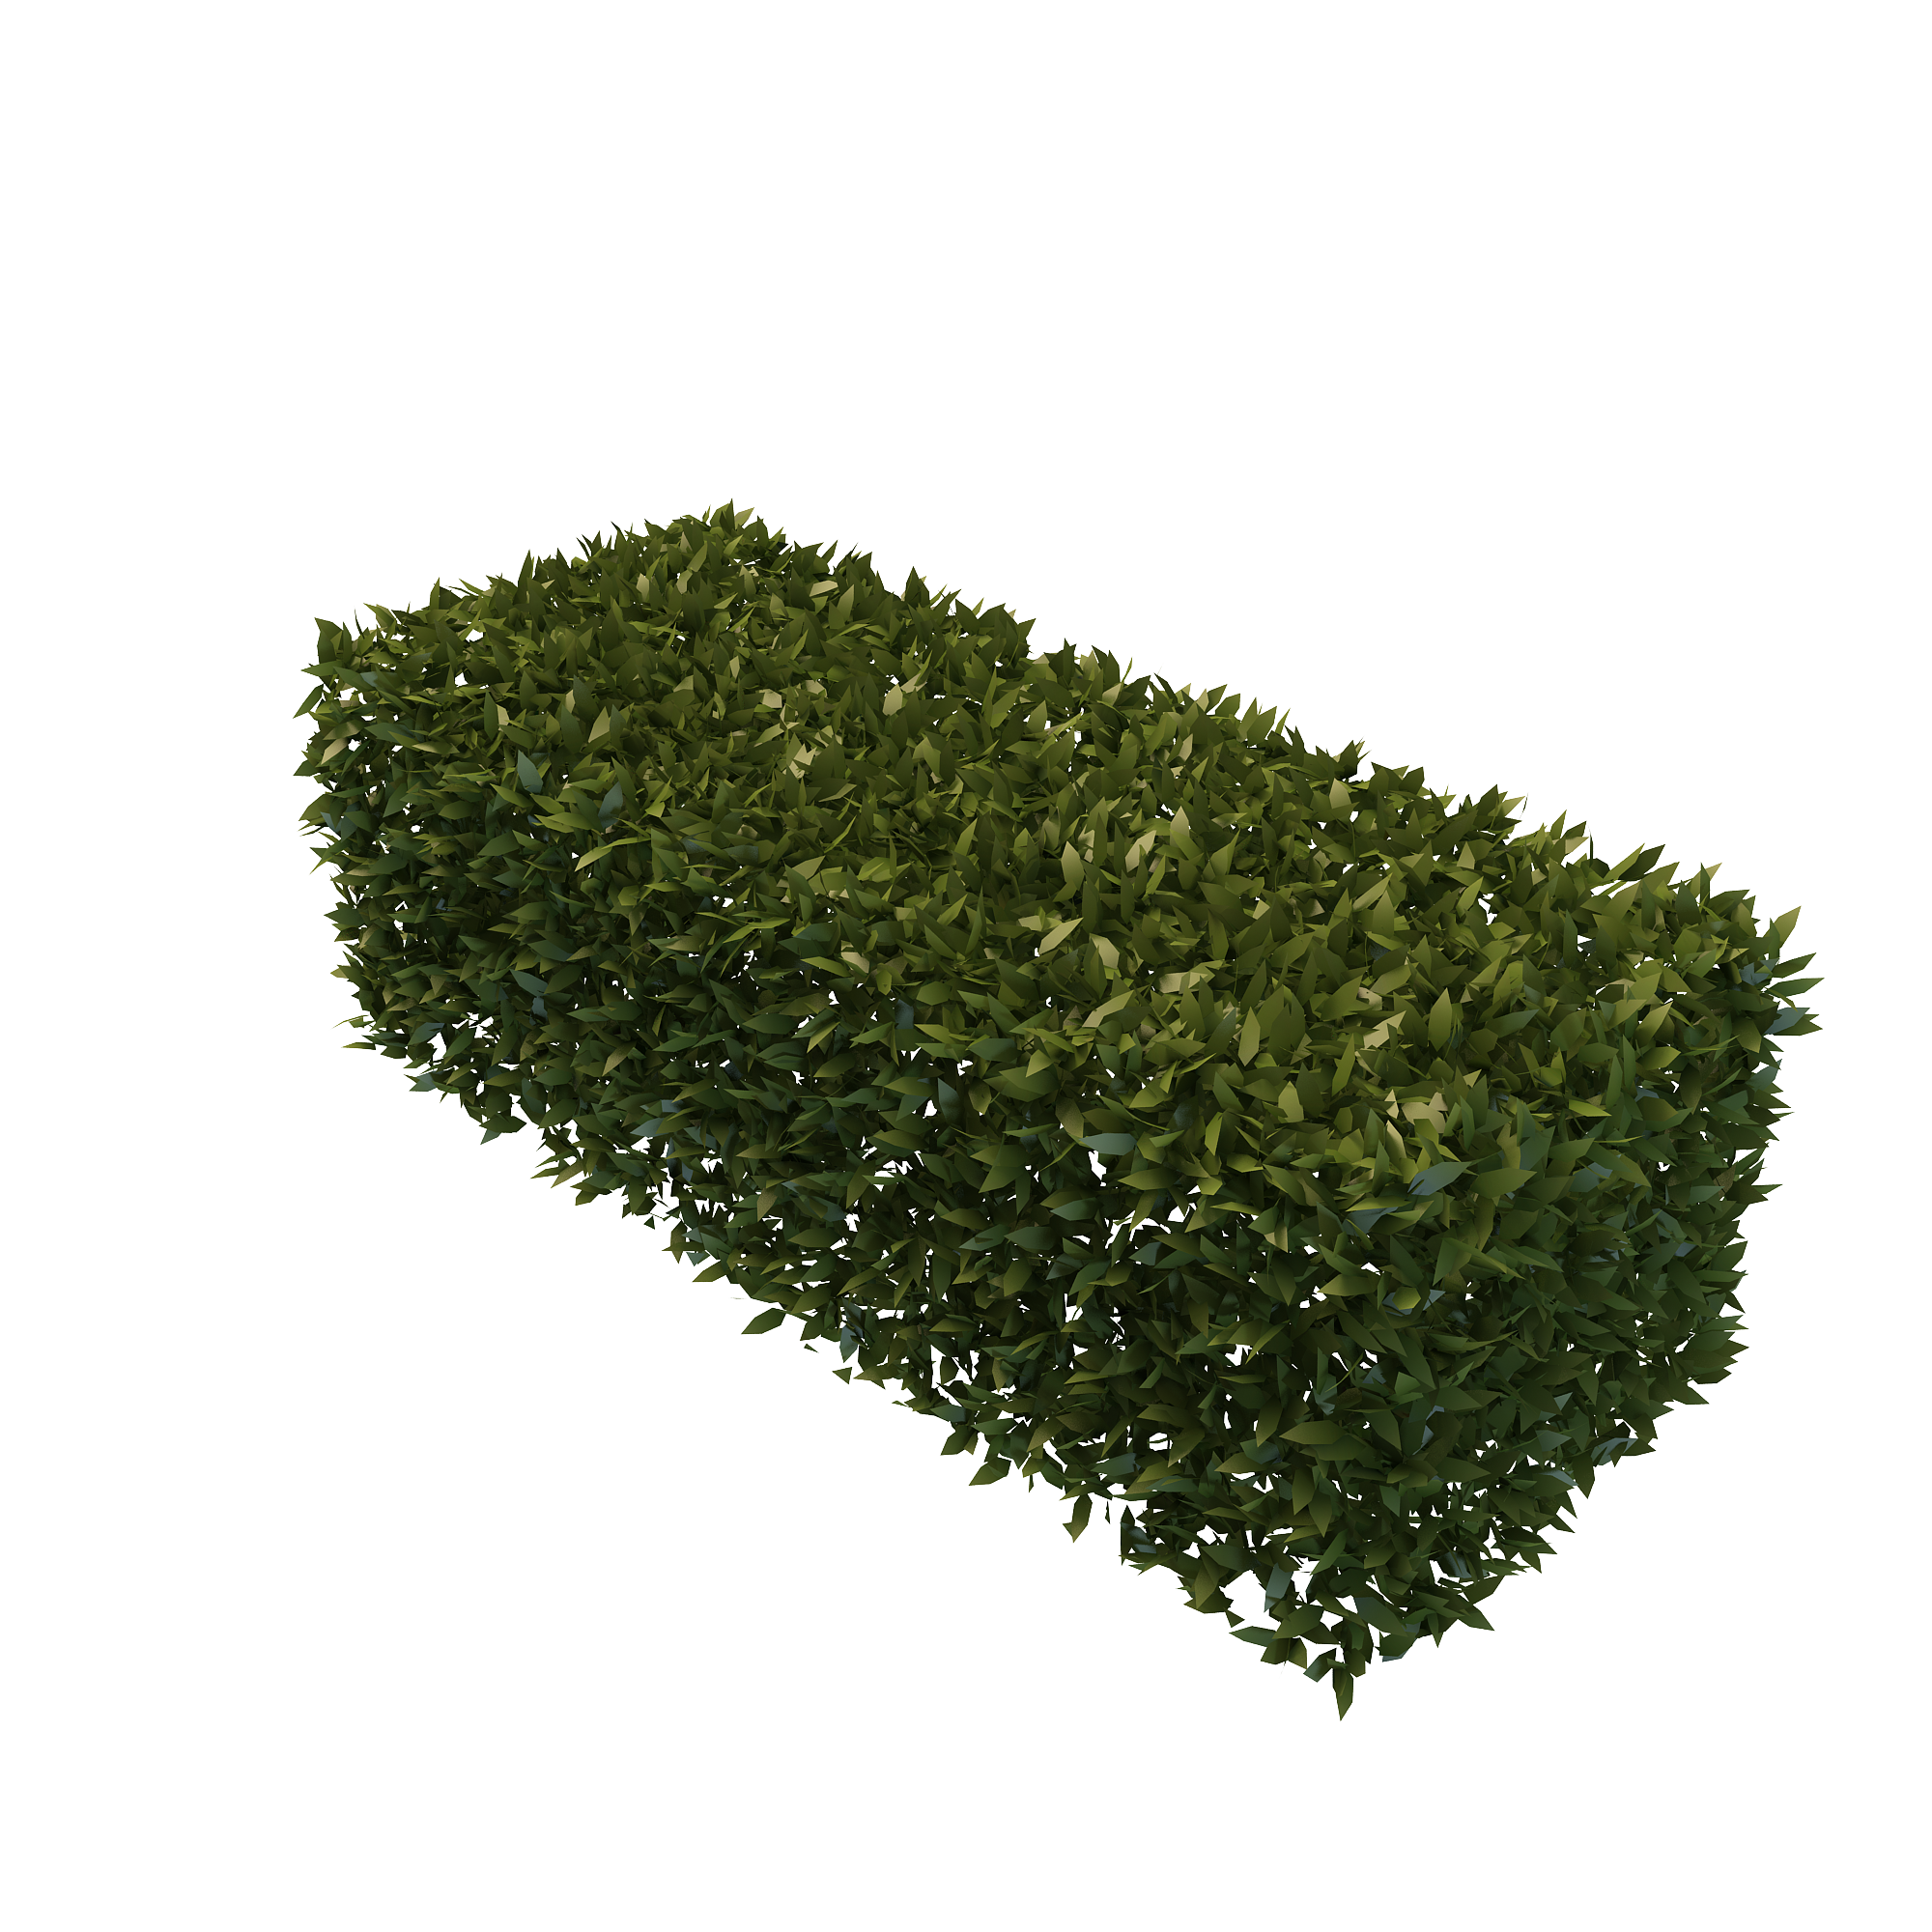 Best Free Hedges Png Image image #32440